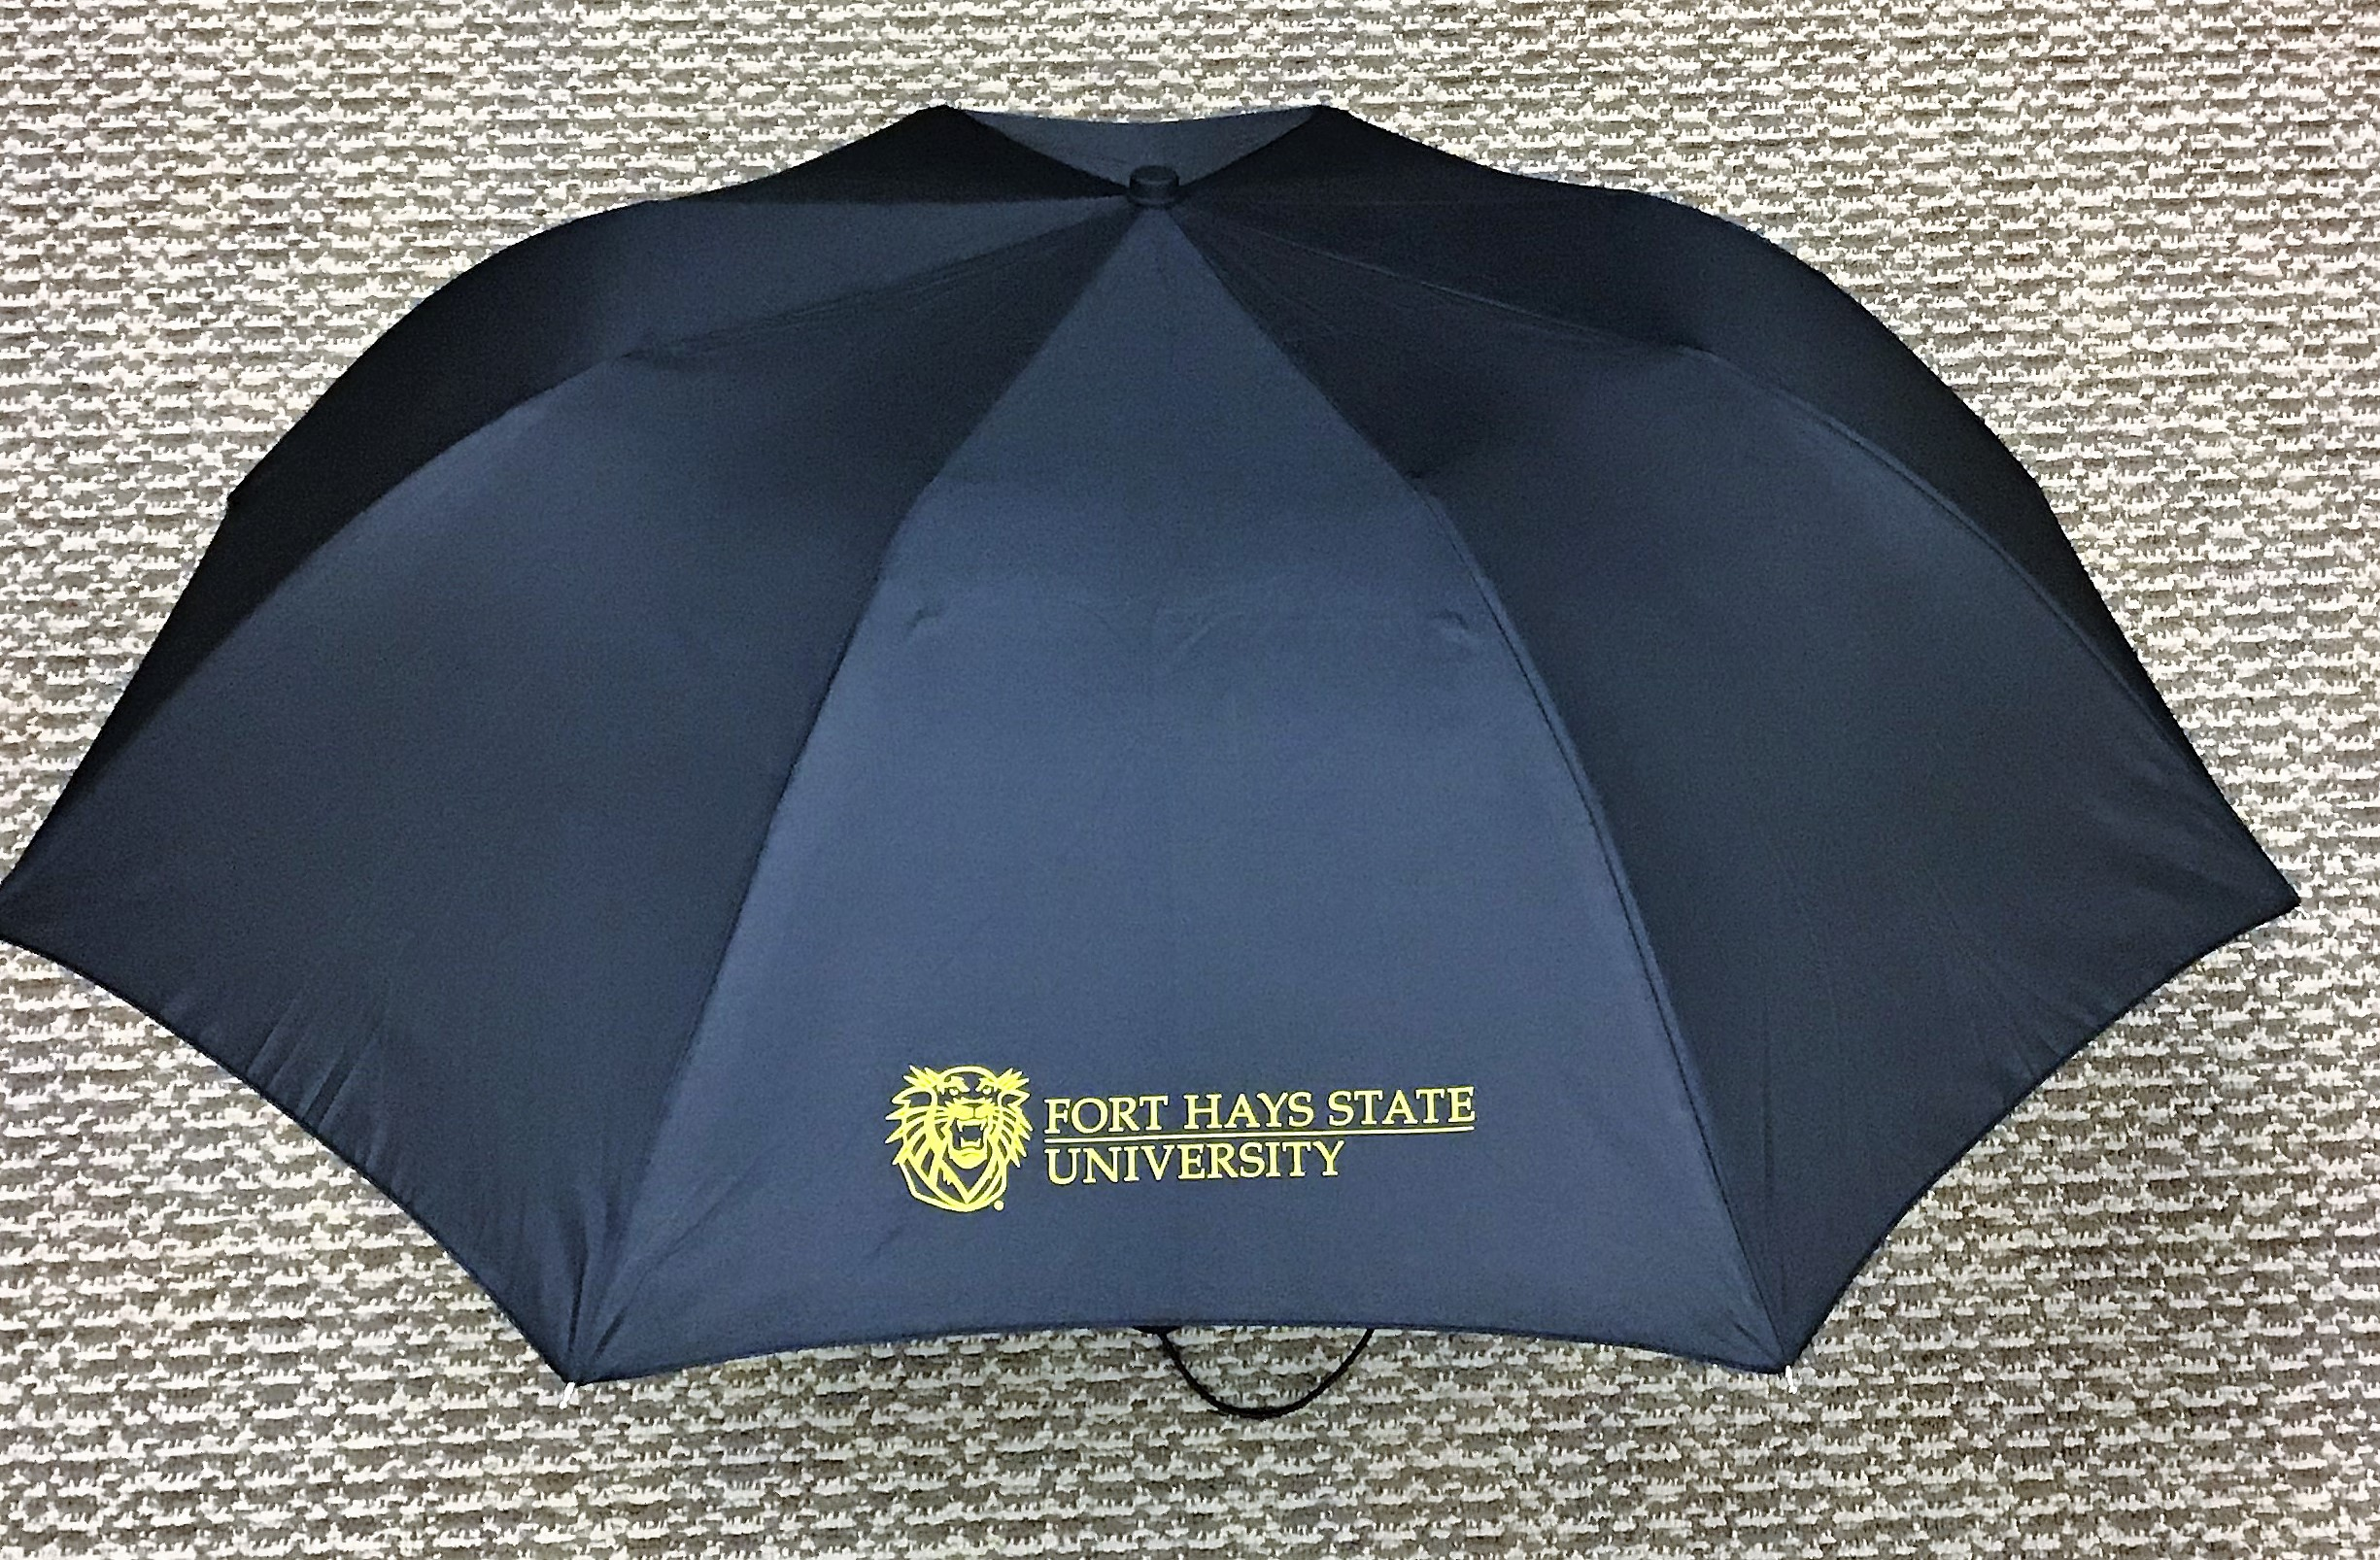 Image for the Deluxe Black Folding Umbrella with Mascot product